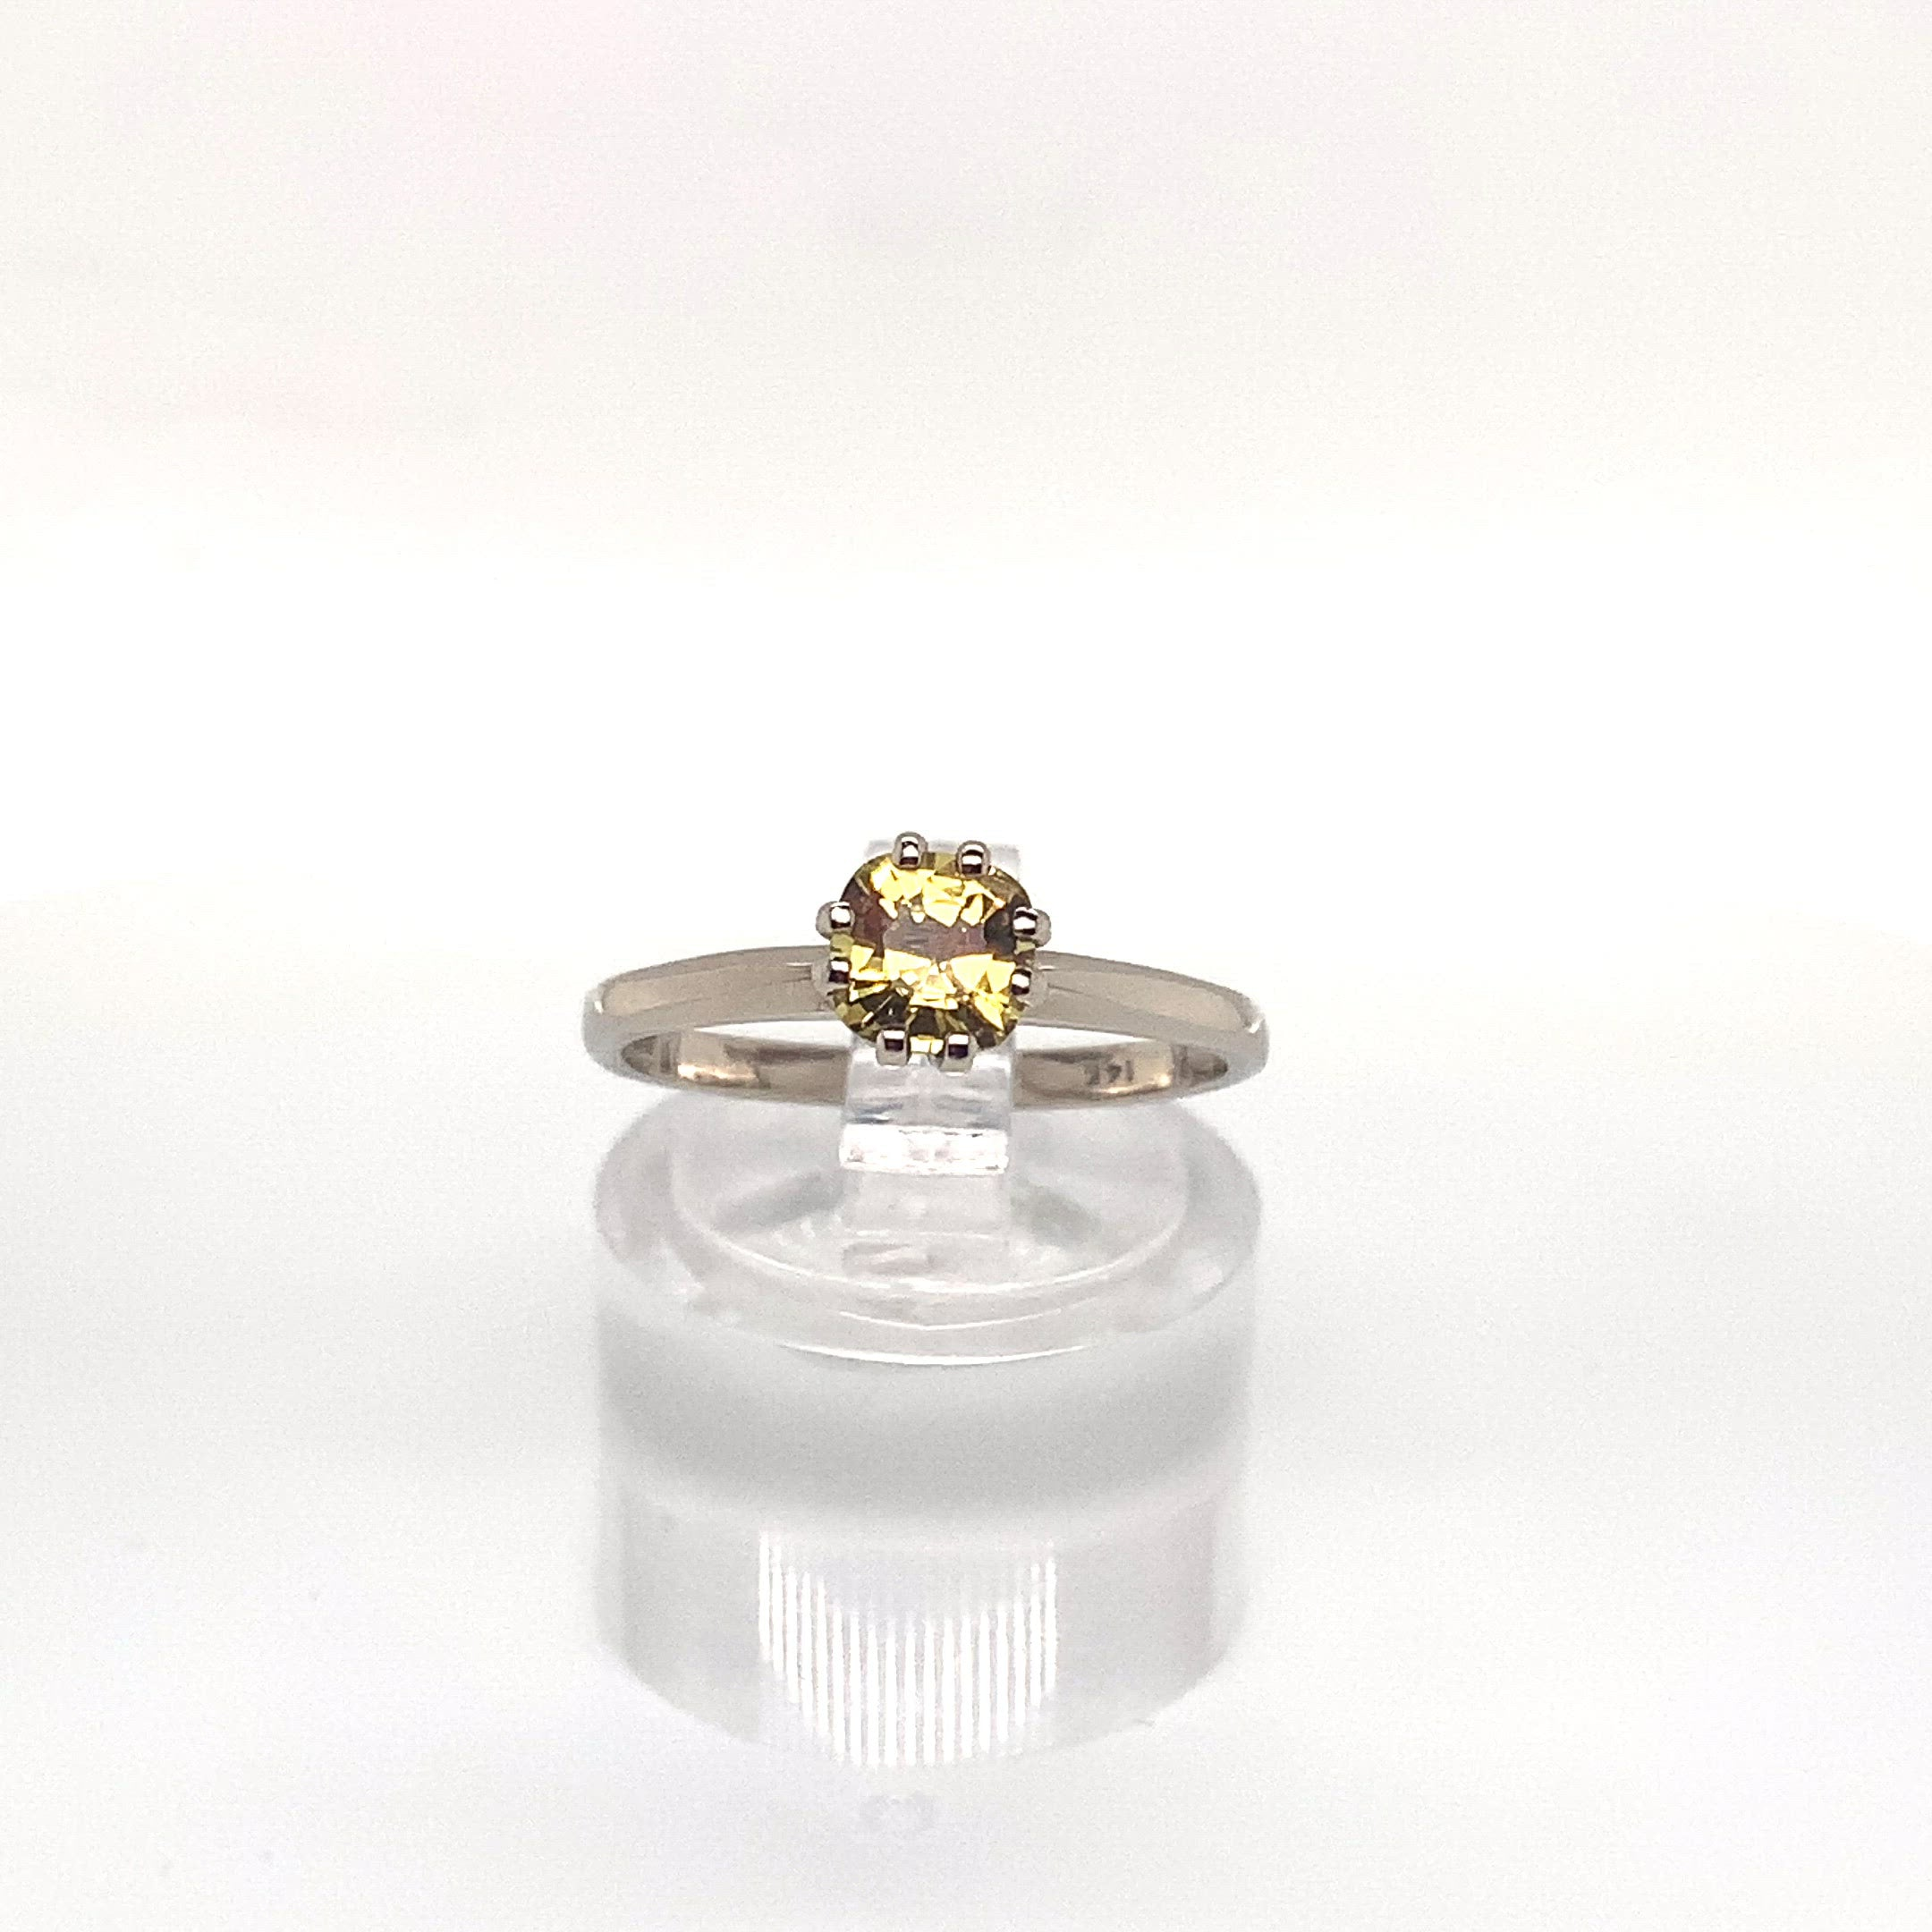 0.70ct Cushion Cut Yellow Sapphire Solitaire Ring